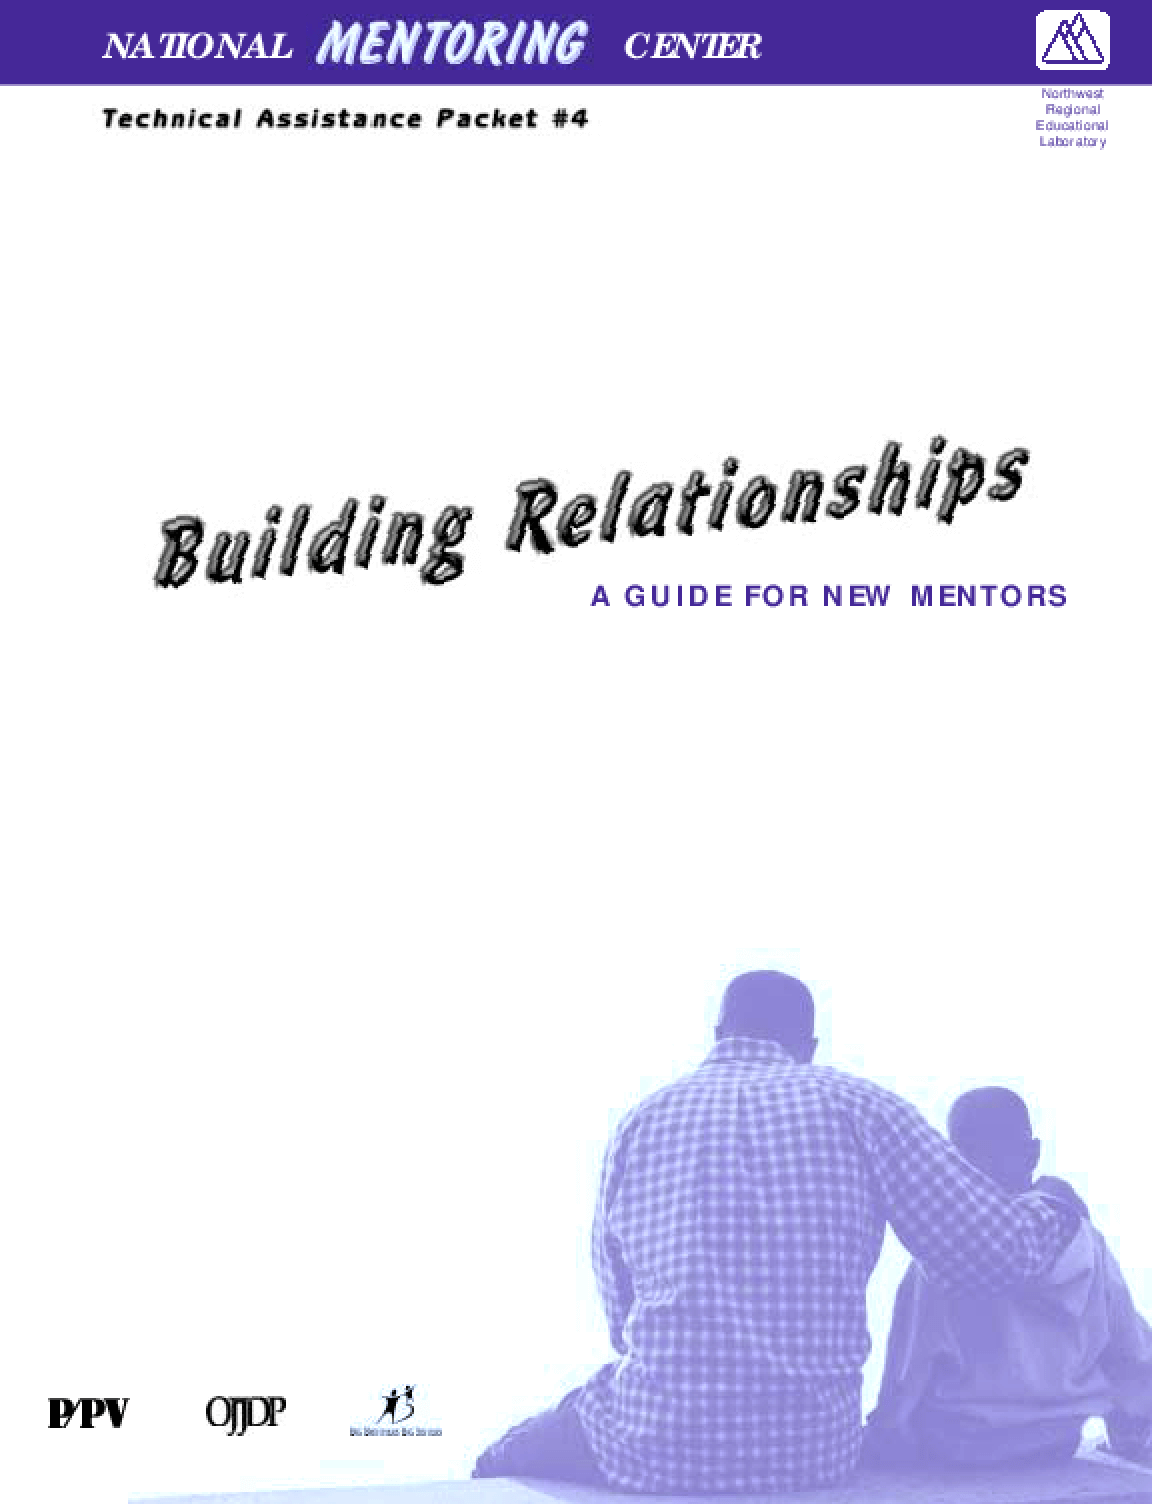 Building Relationships: A Guide for New Mentors